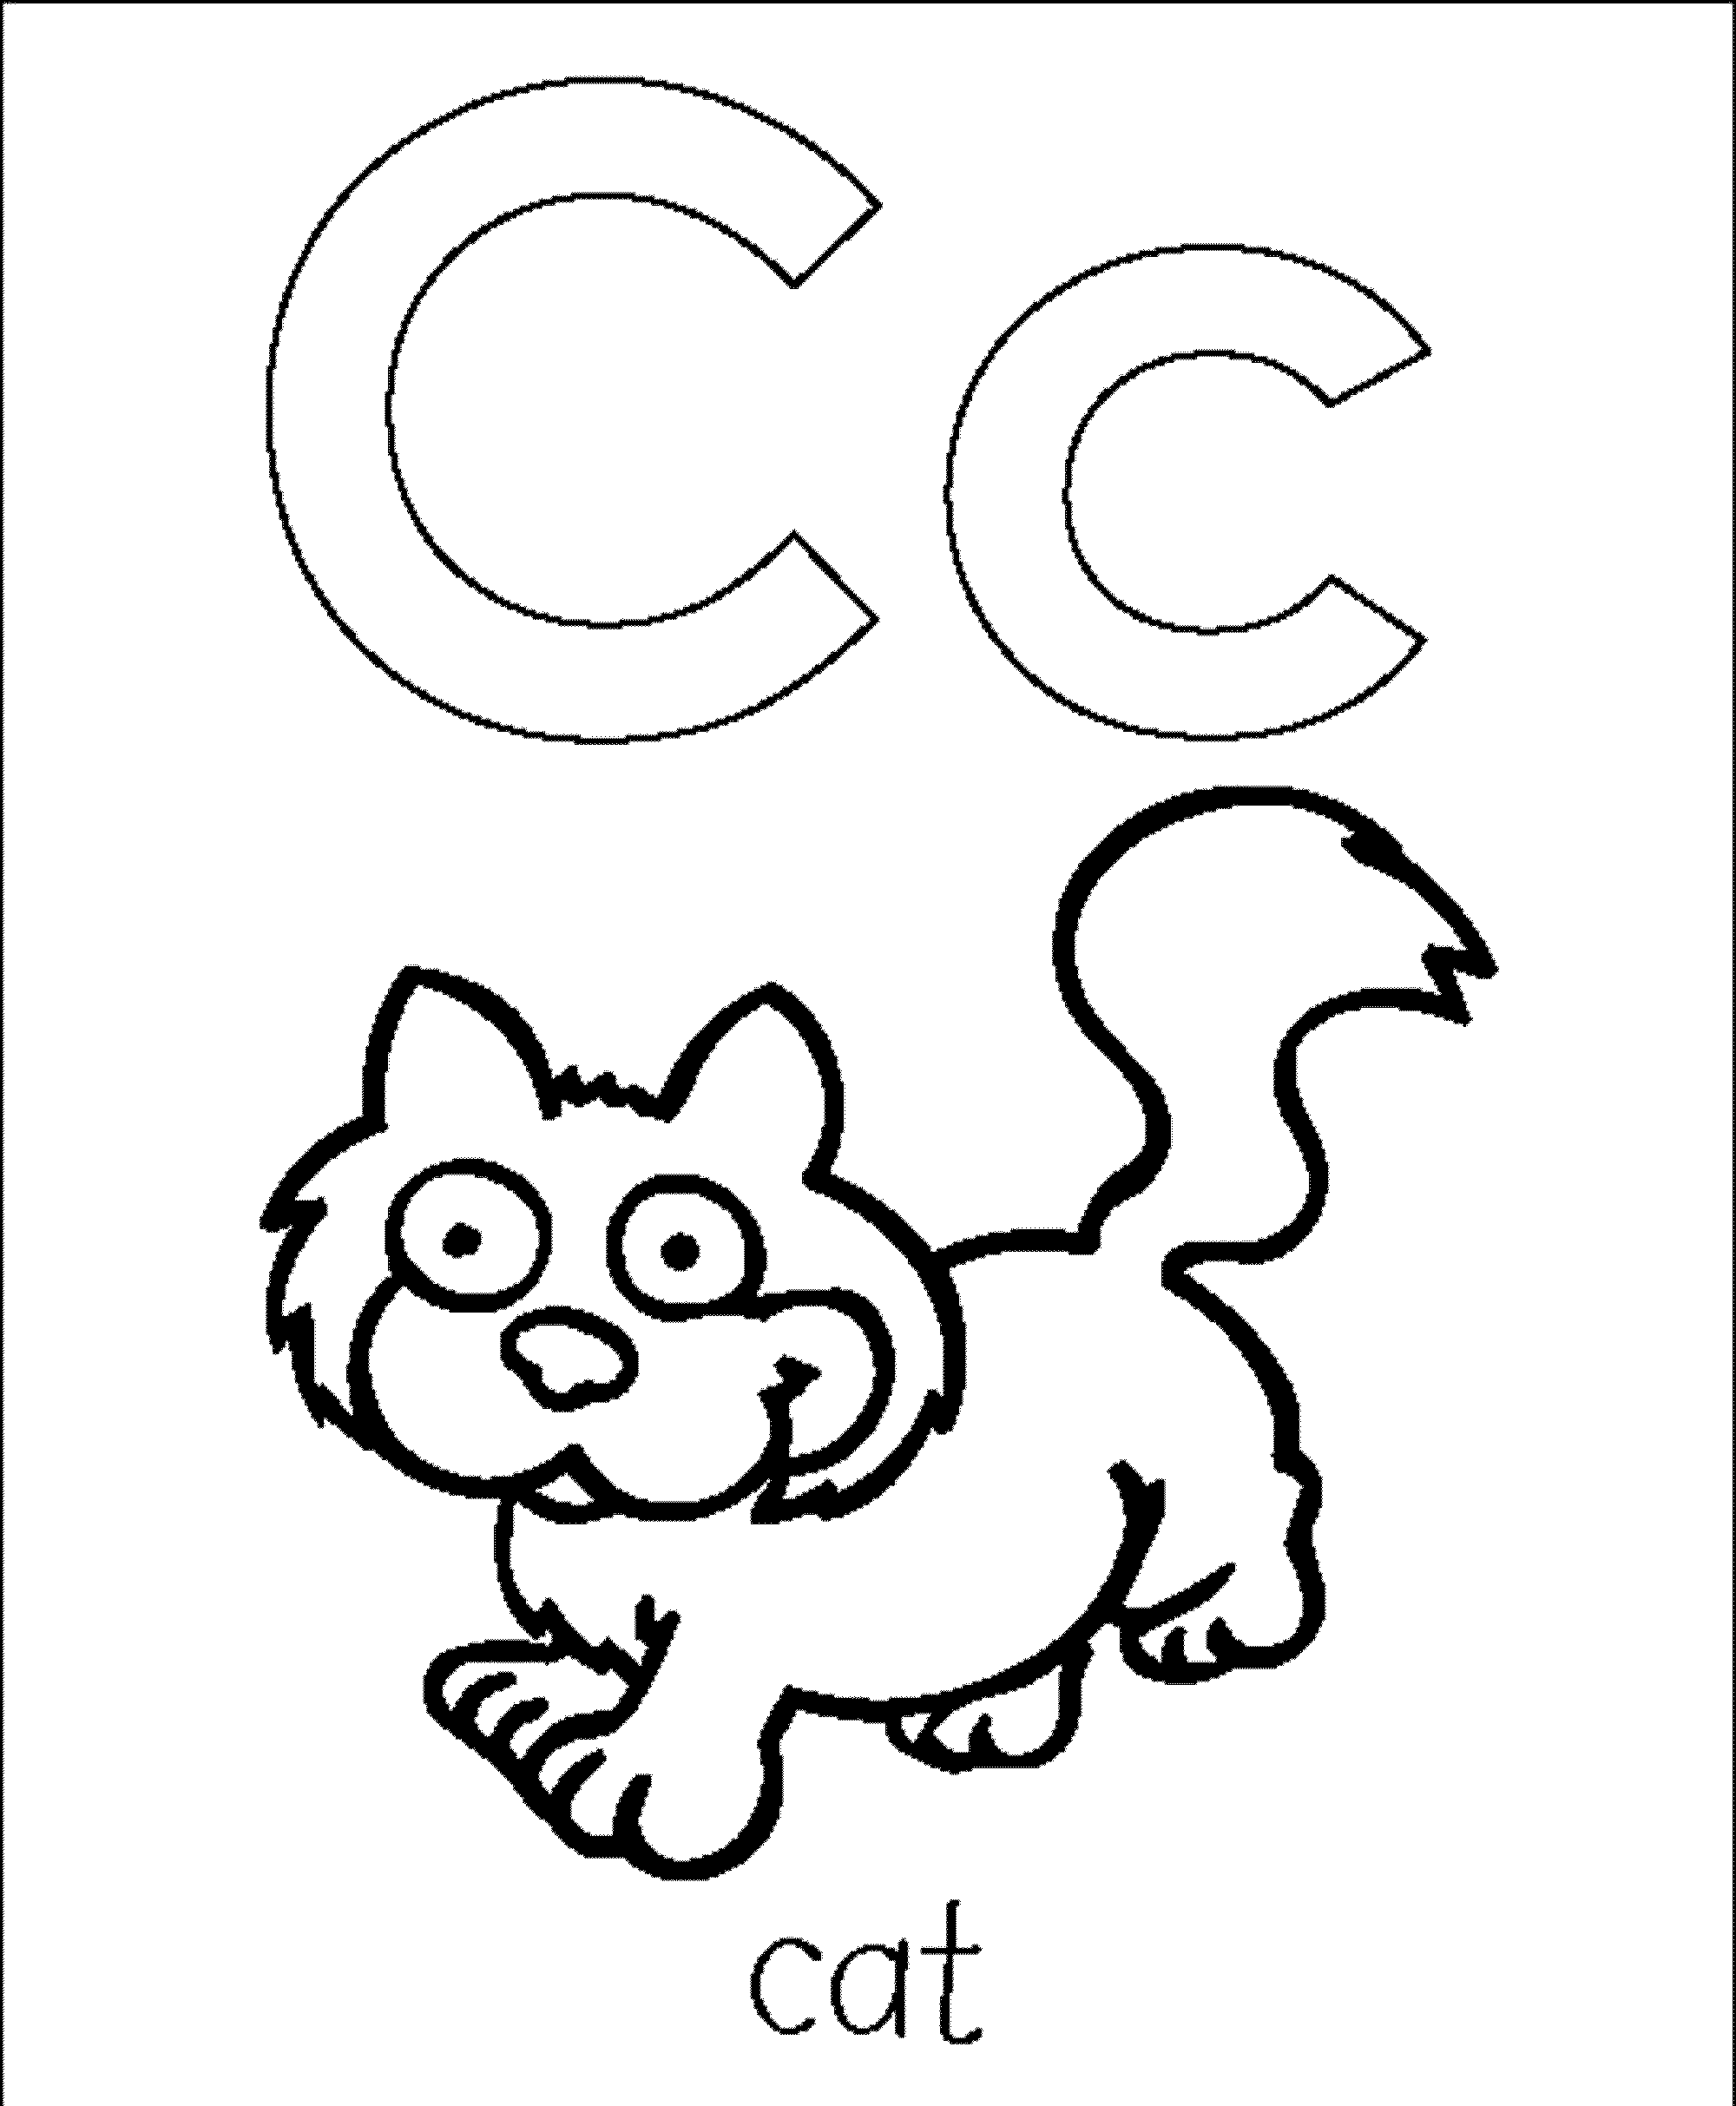 c coloring pages - photo #29